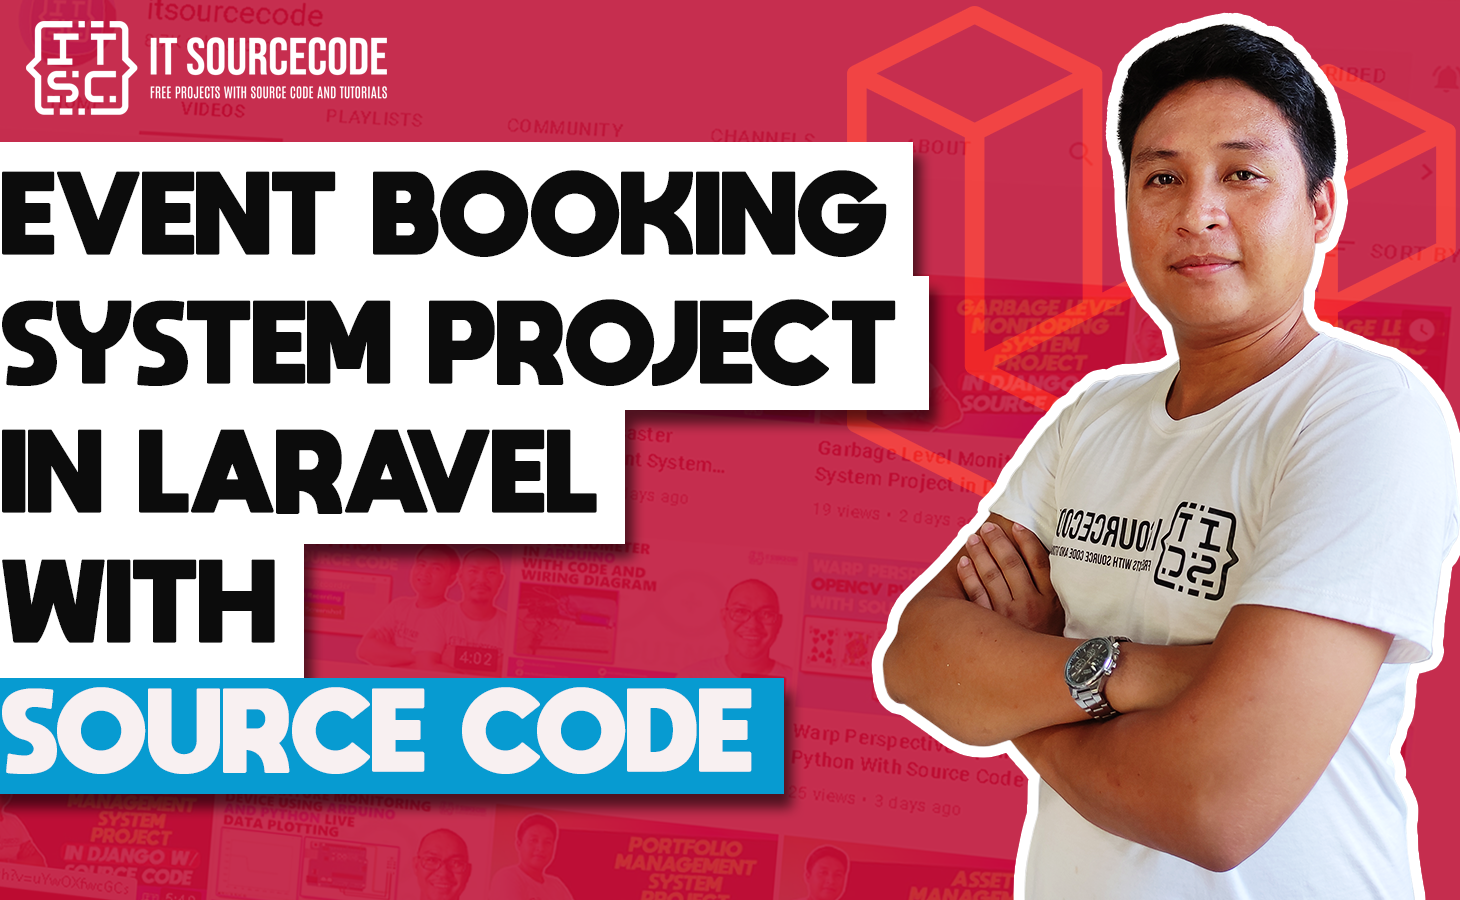 Event Booking System Project in Laravel with Source Code